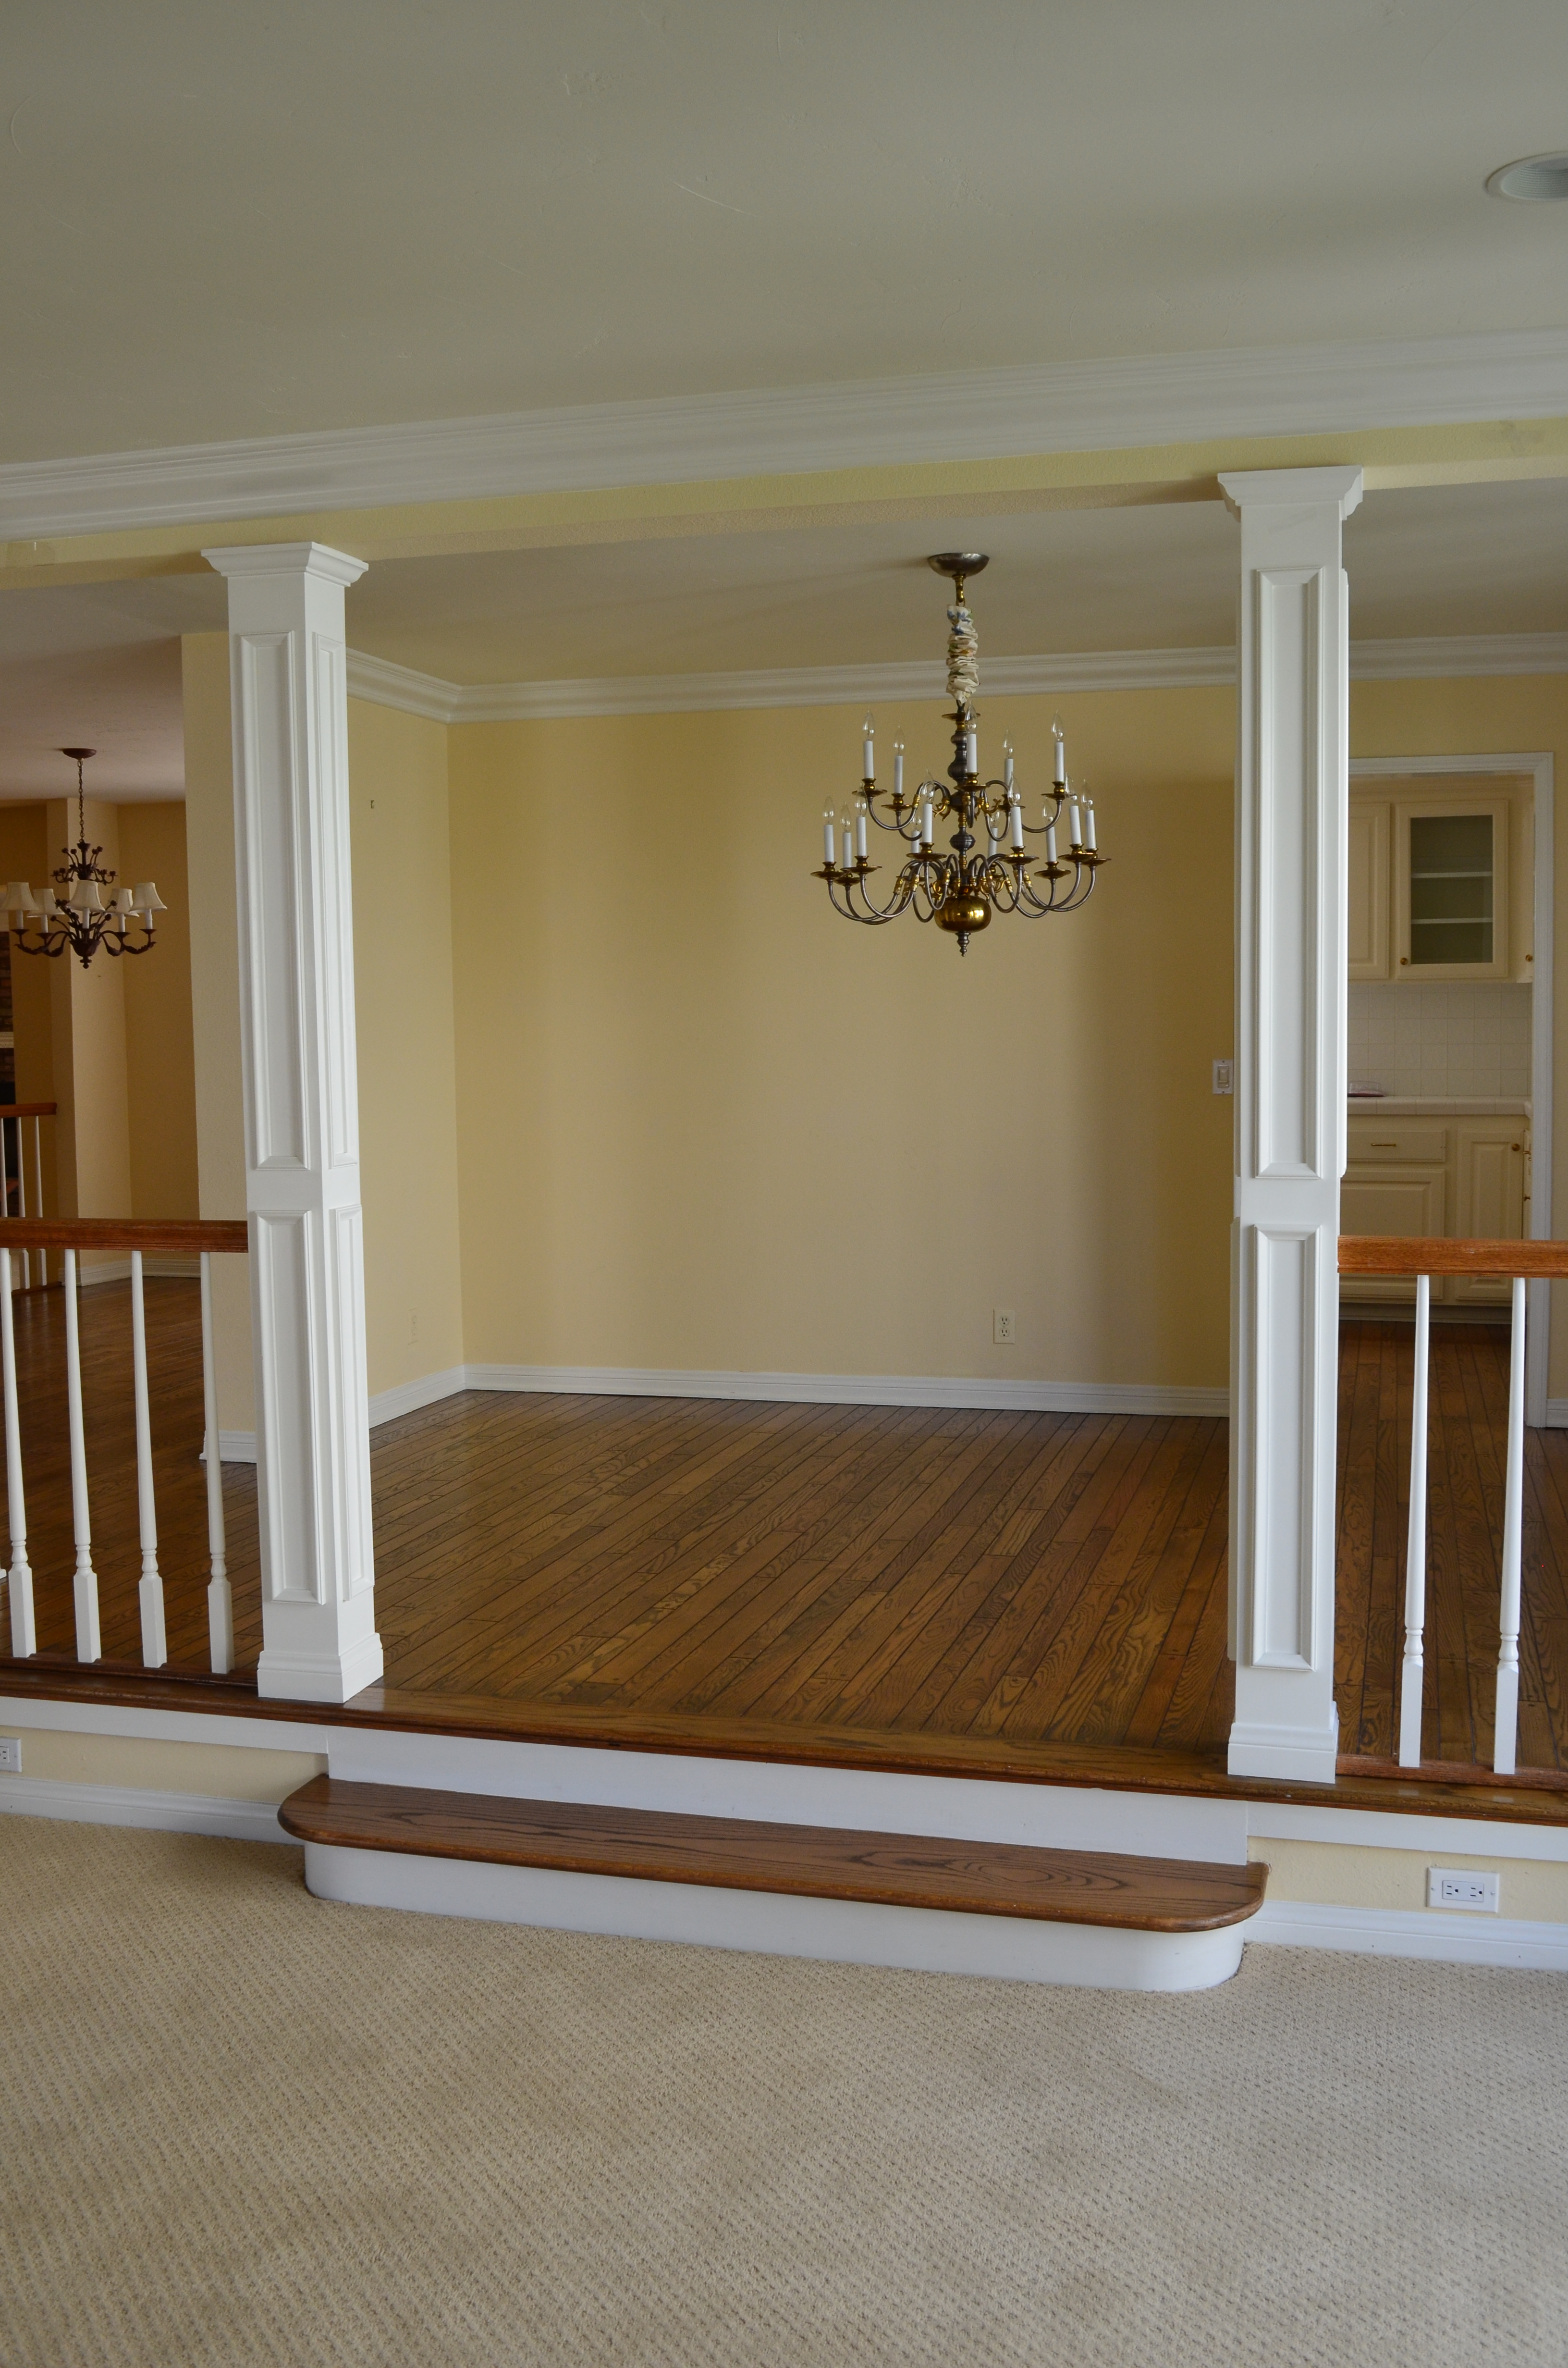 1000 Images About Sunken Room On Pinterest Sunken Living Room Home Additions And Grant Beige